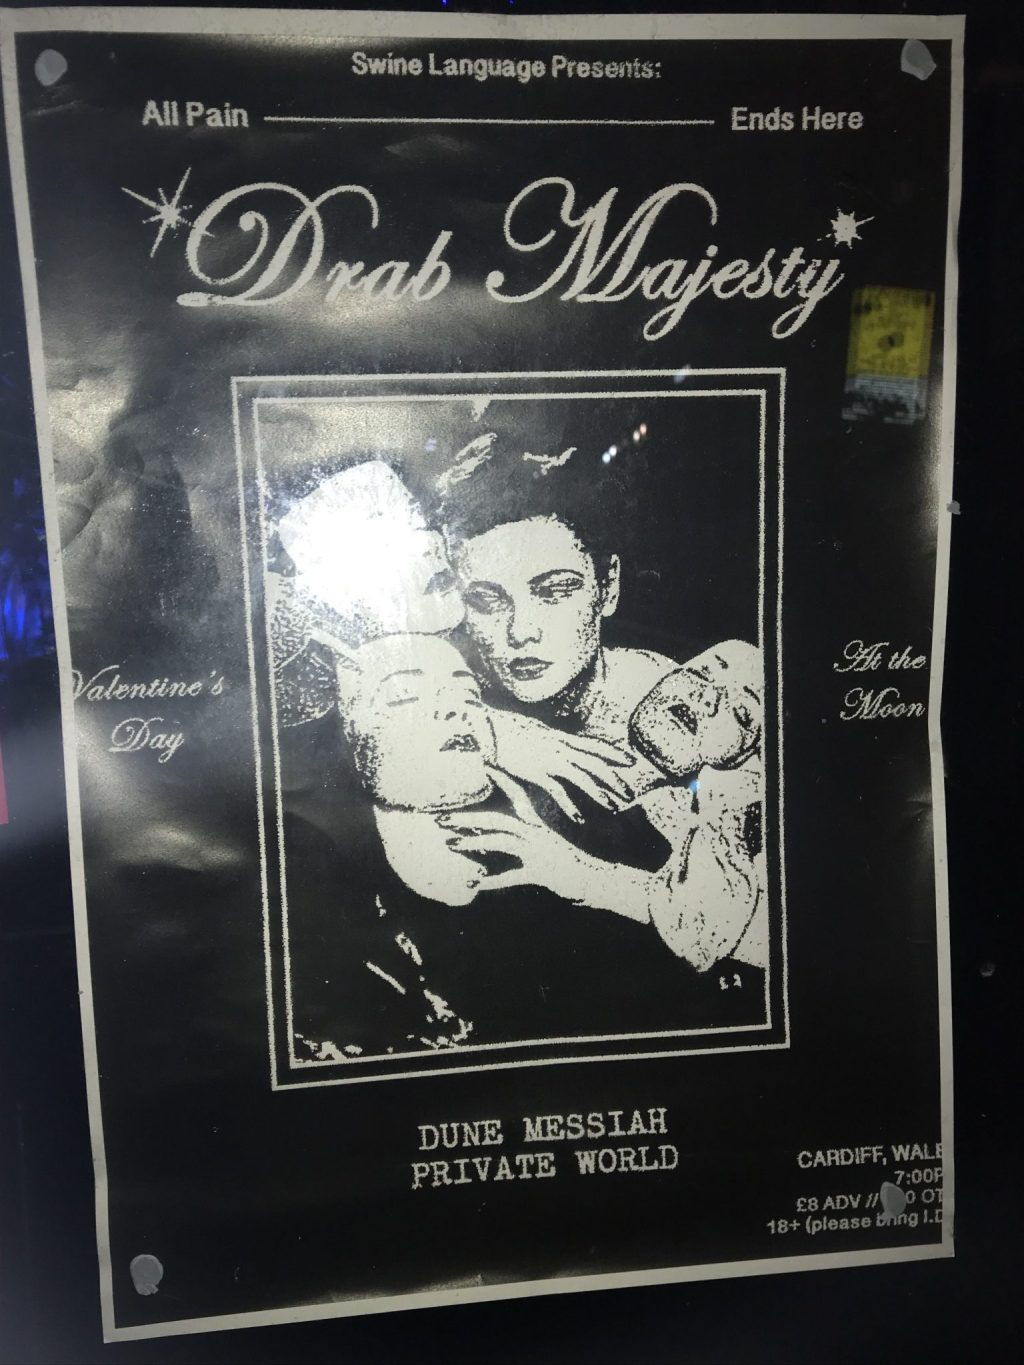 Drab Majesty - The Moon - Cardiff - 14th February 2018